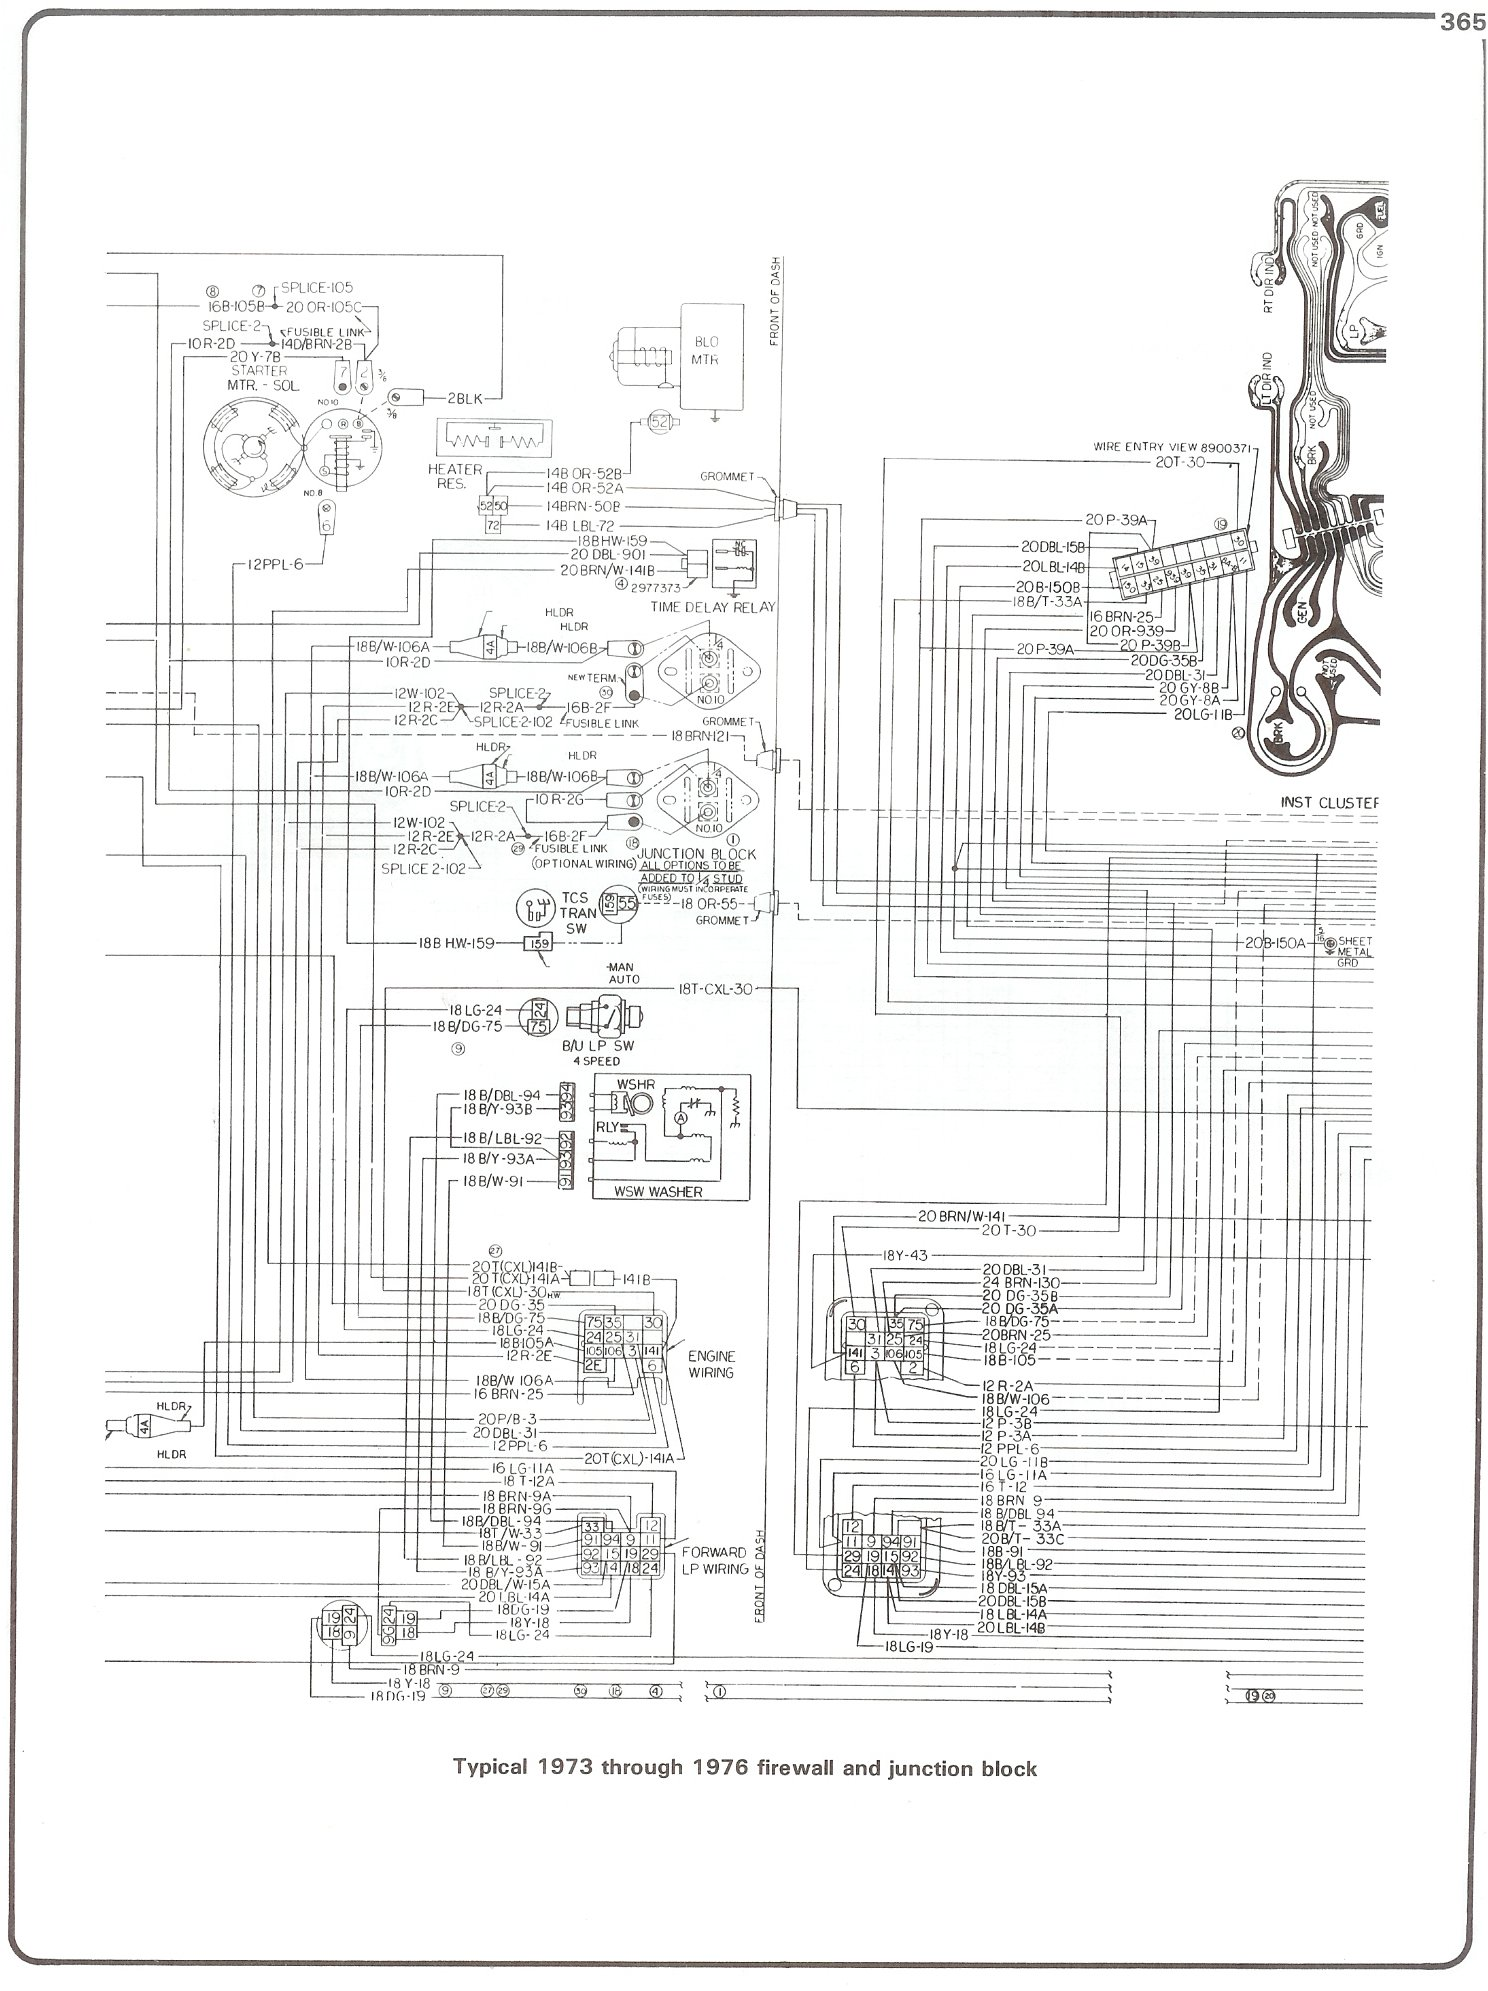 1966 charger wiring diagram manual pdf